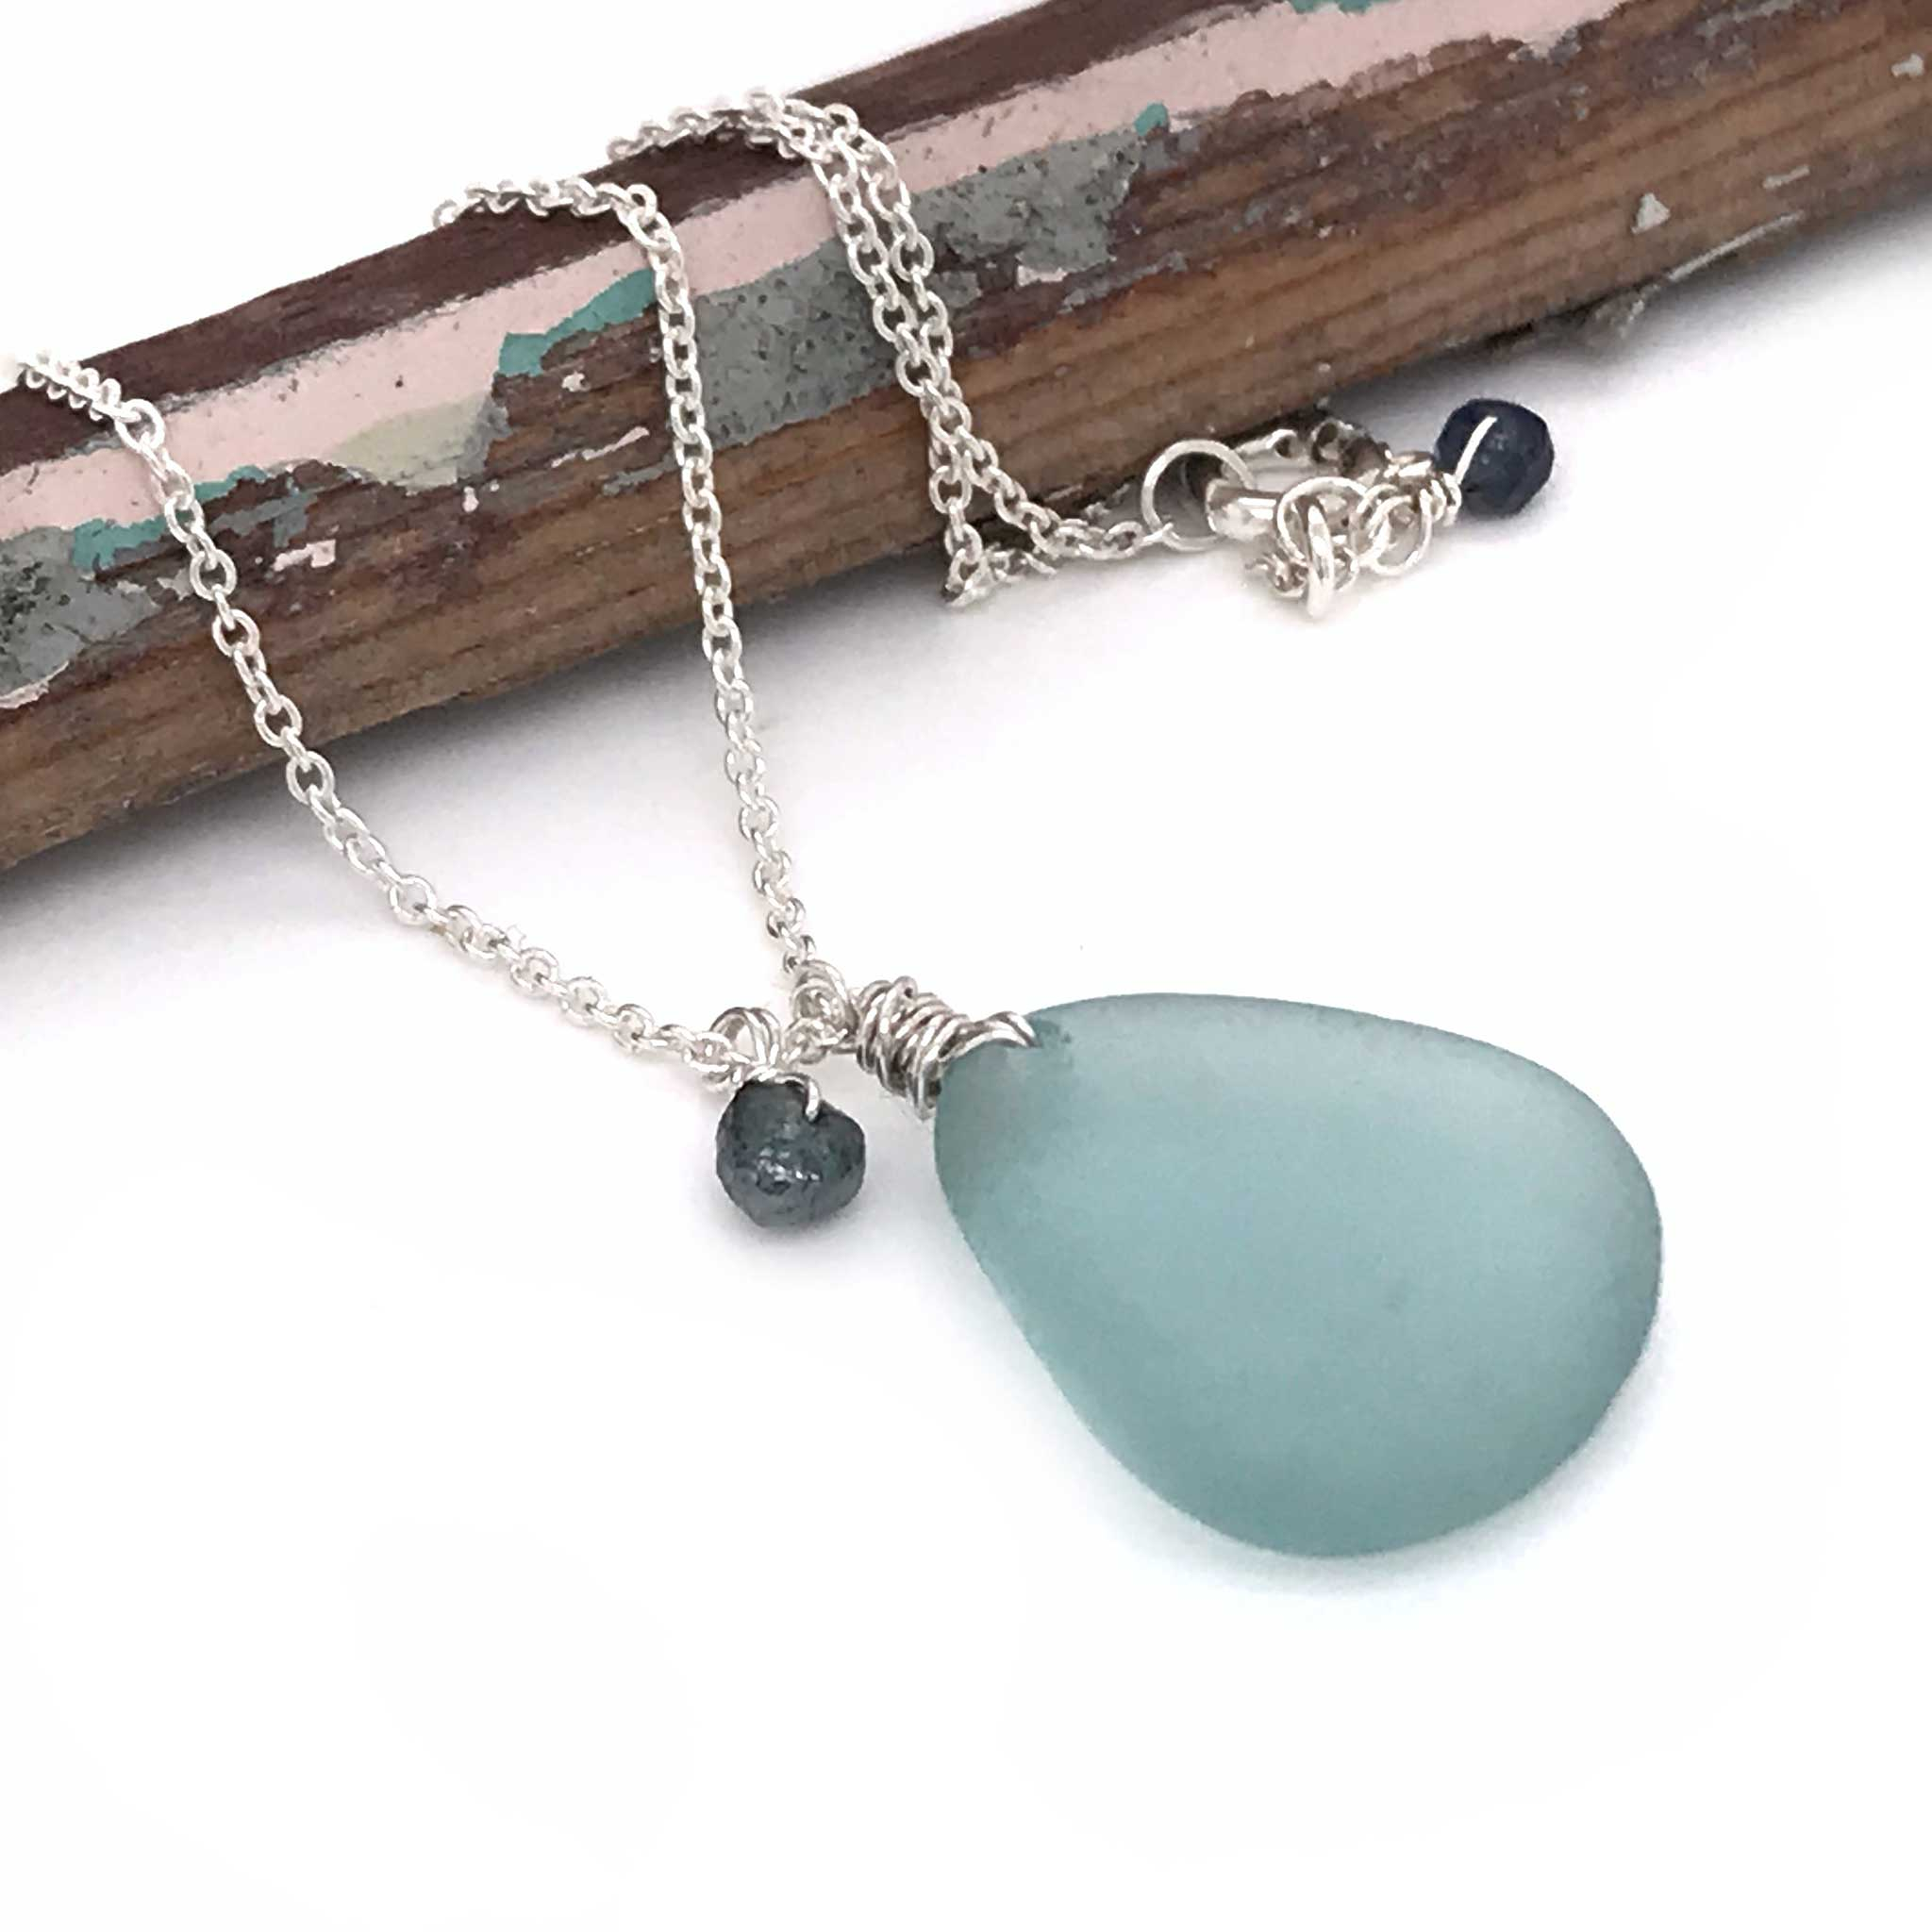 aqua blue sea glass on sterling silver chain with rough cut diamond and sapphire Kriket Broadhurst jewellery Australia